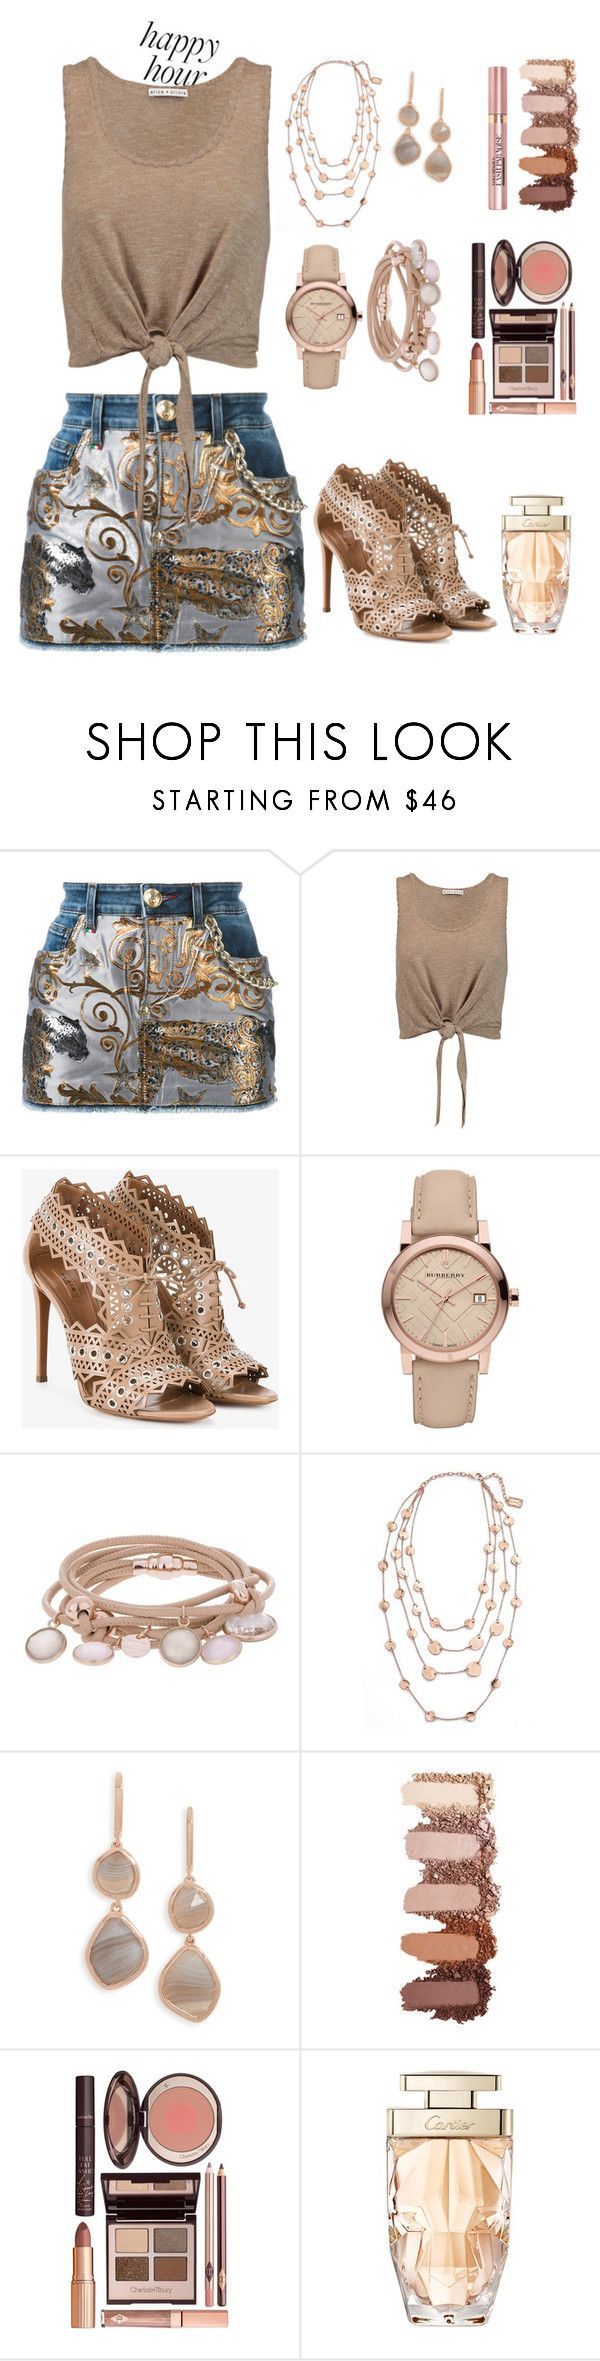 """Happy Hour"" by fabsouza ❤ liked on Polyvore featuring Philipp Plein, Alice + Olivia, Alaïa, Burberry, Marjana von Berlepsch, Karine Sultan, Monica Vinader, L'Oréal Paris, Charlotte Tilbury and Cartier"